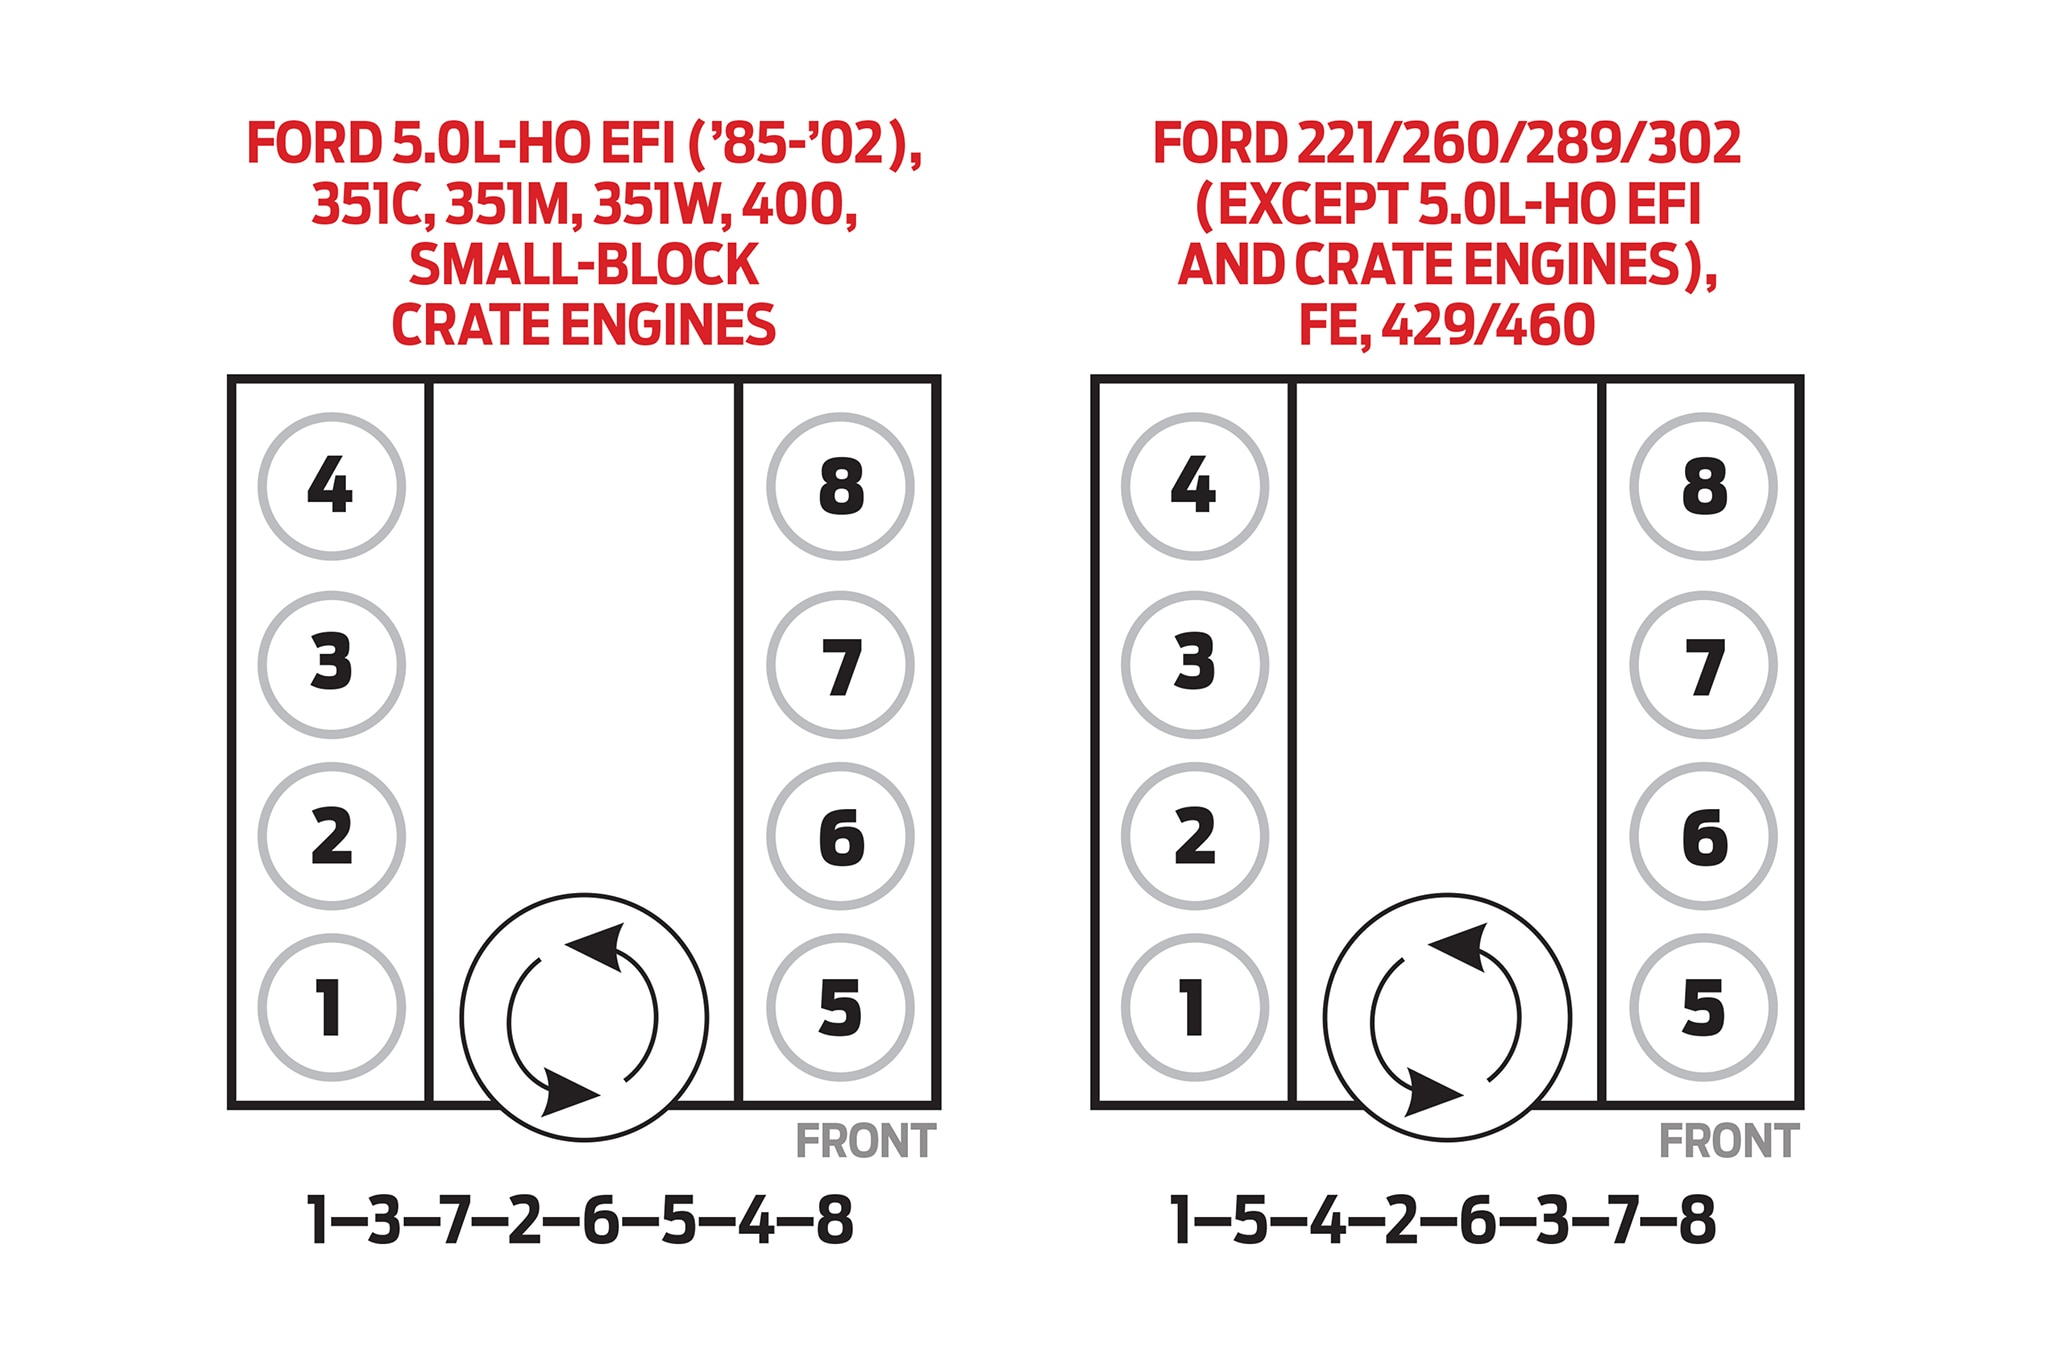 mustang 5 0 ho firing order diagram further ford mustang wiring ford 4 0 firing order diagram 1993 ford 5 0 firing order ford [ 2048 x 1360 Pixel ]